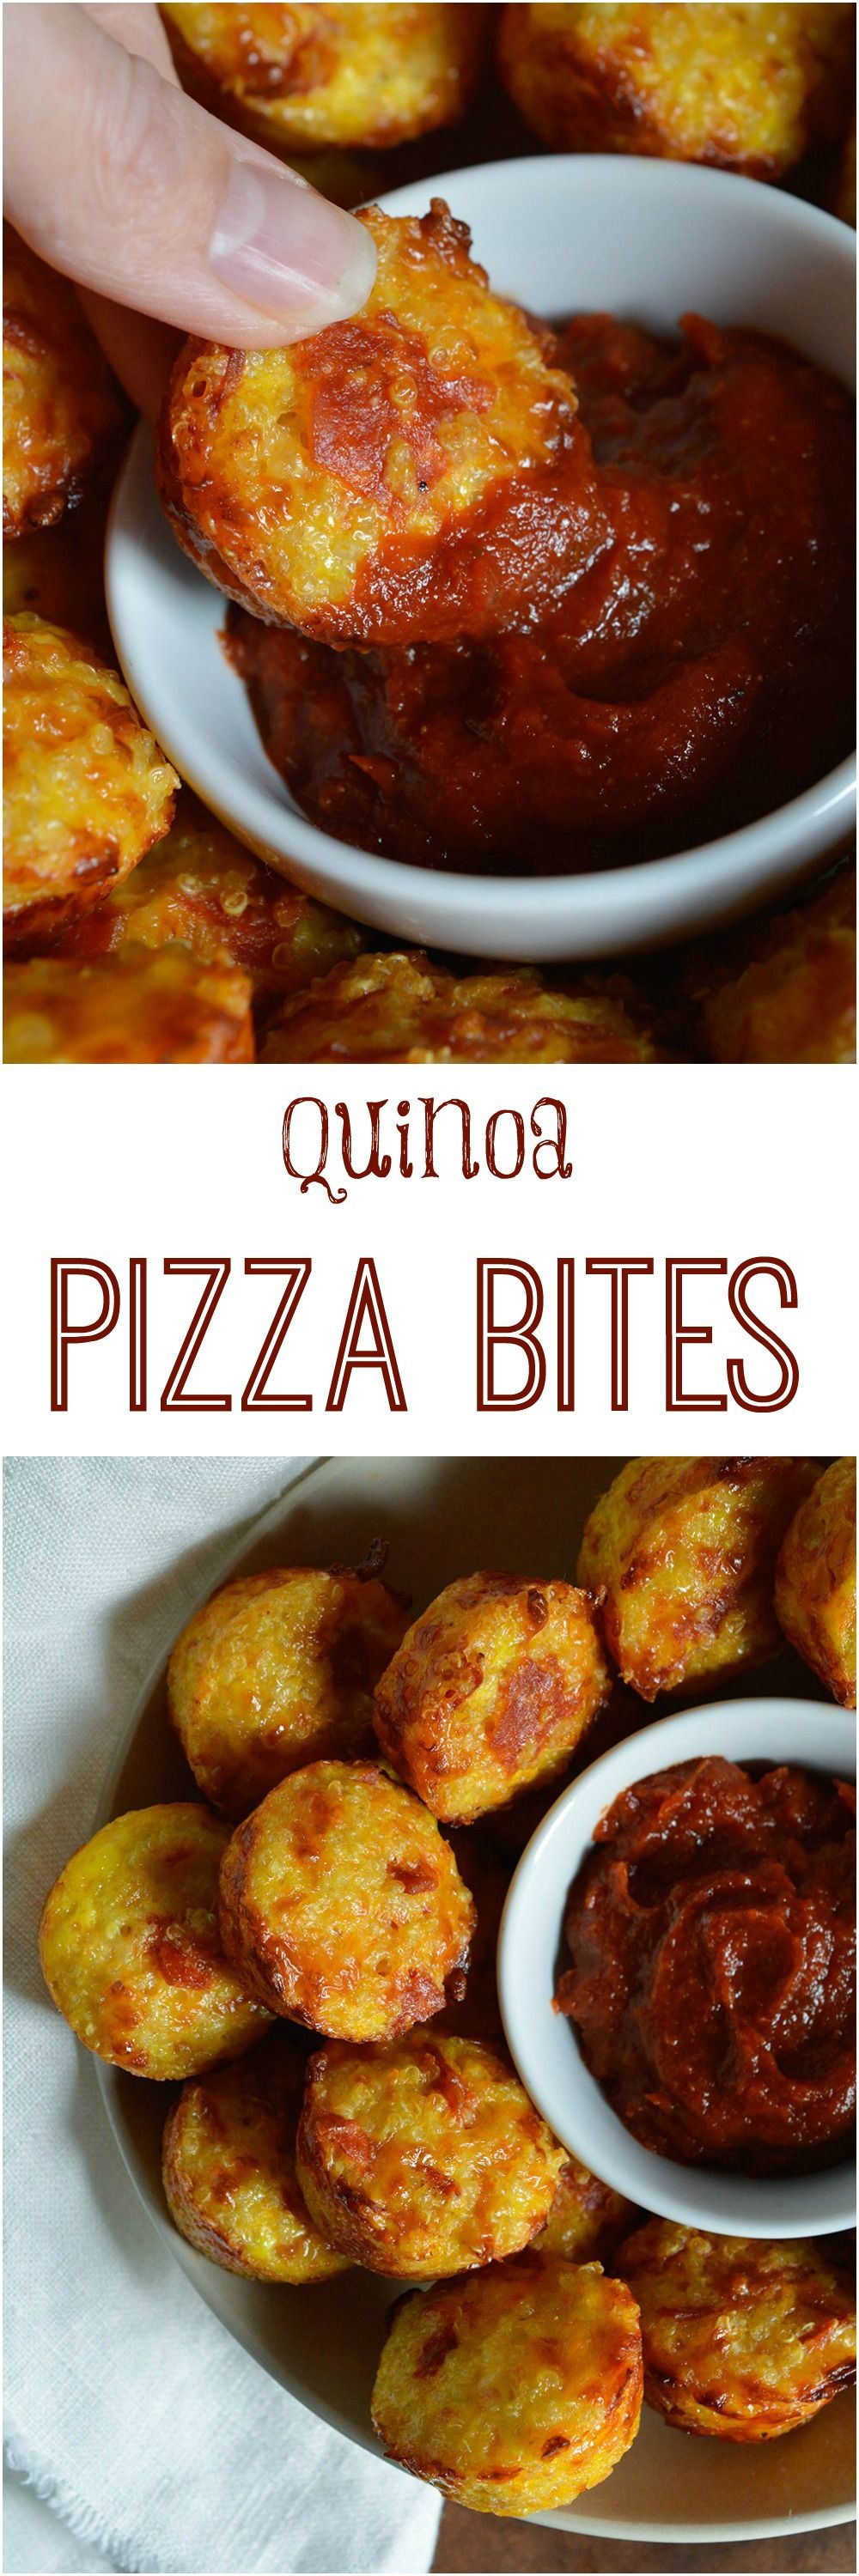 Gluten Free Quinoa Pizza Bites Recipe - This healthy pizza alternative has all the flavor of a cheesy pepperoni pizza without the guilt. This appetizer is best served with pizza sauce dip. #glutenfree #pizza wonkywonderful.com